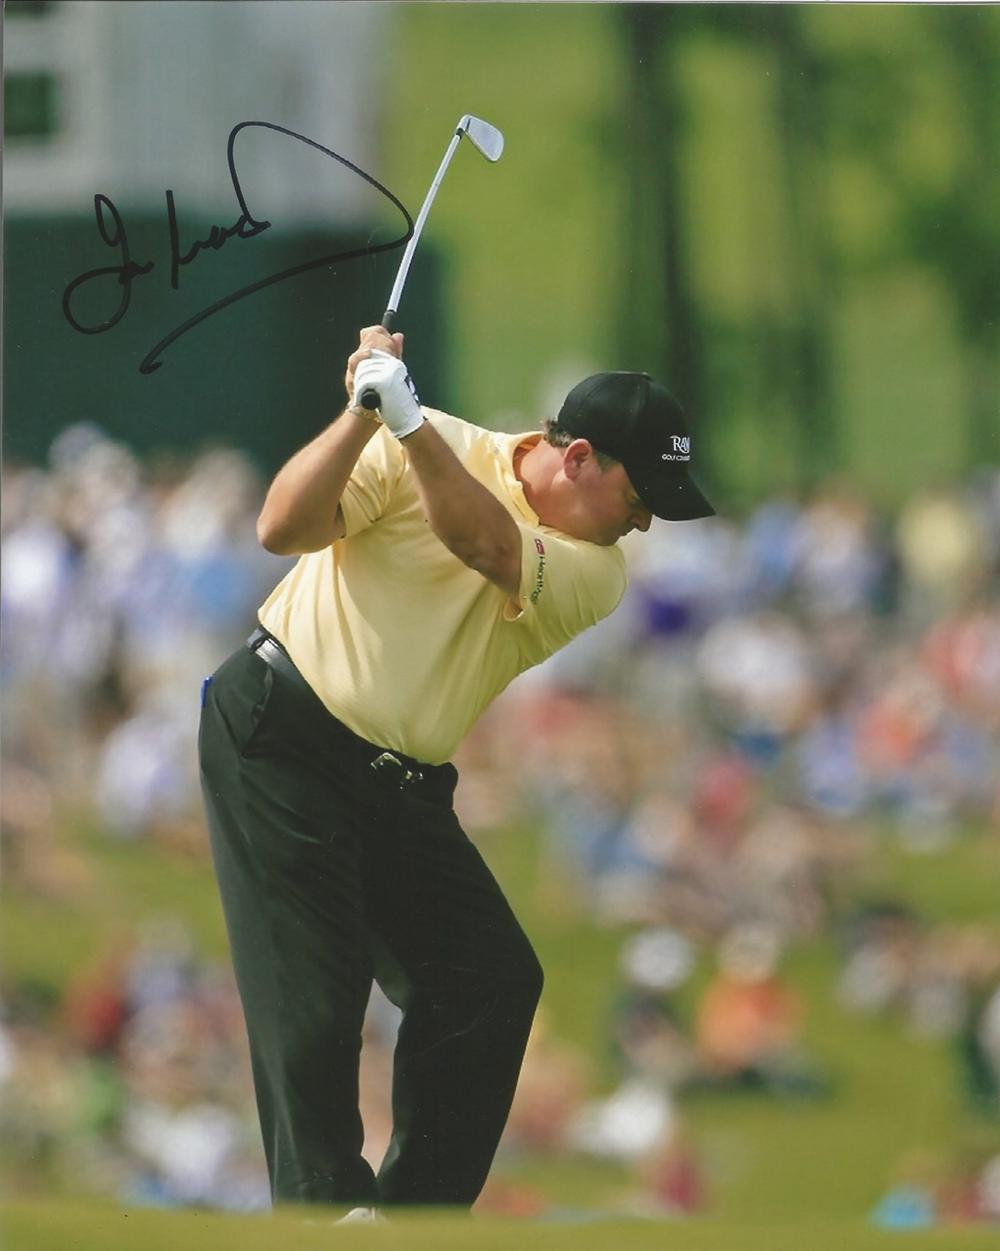 Ian Woosnam signed 10x8 colour golf action photo. Good condition. All autographs come with a